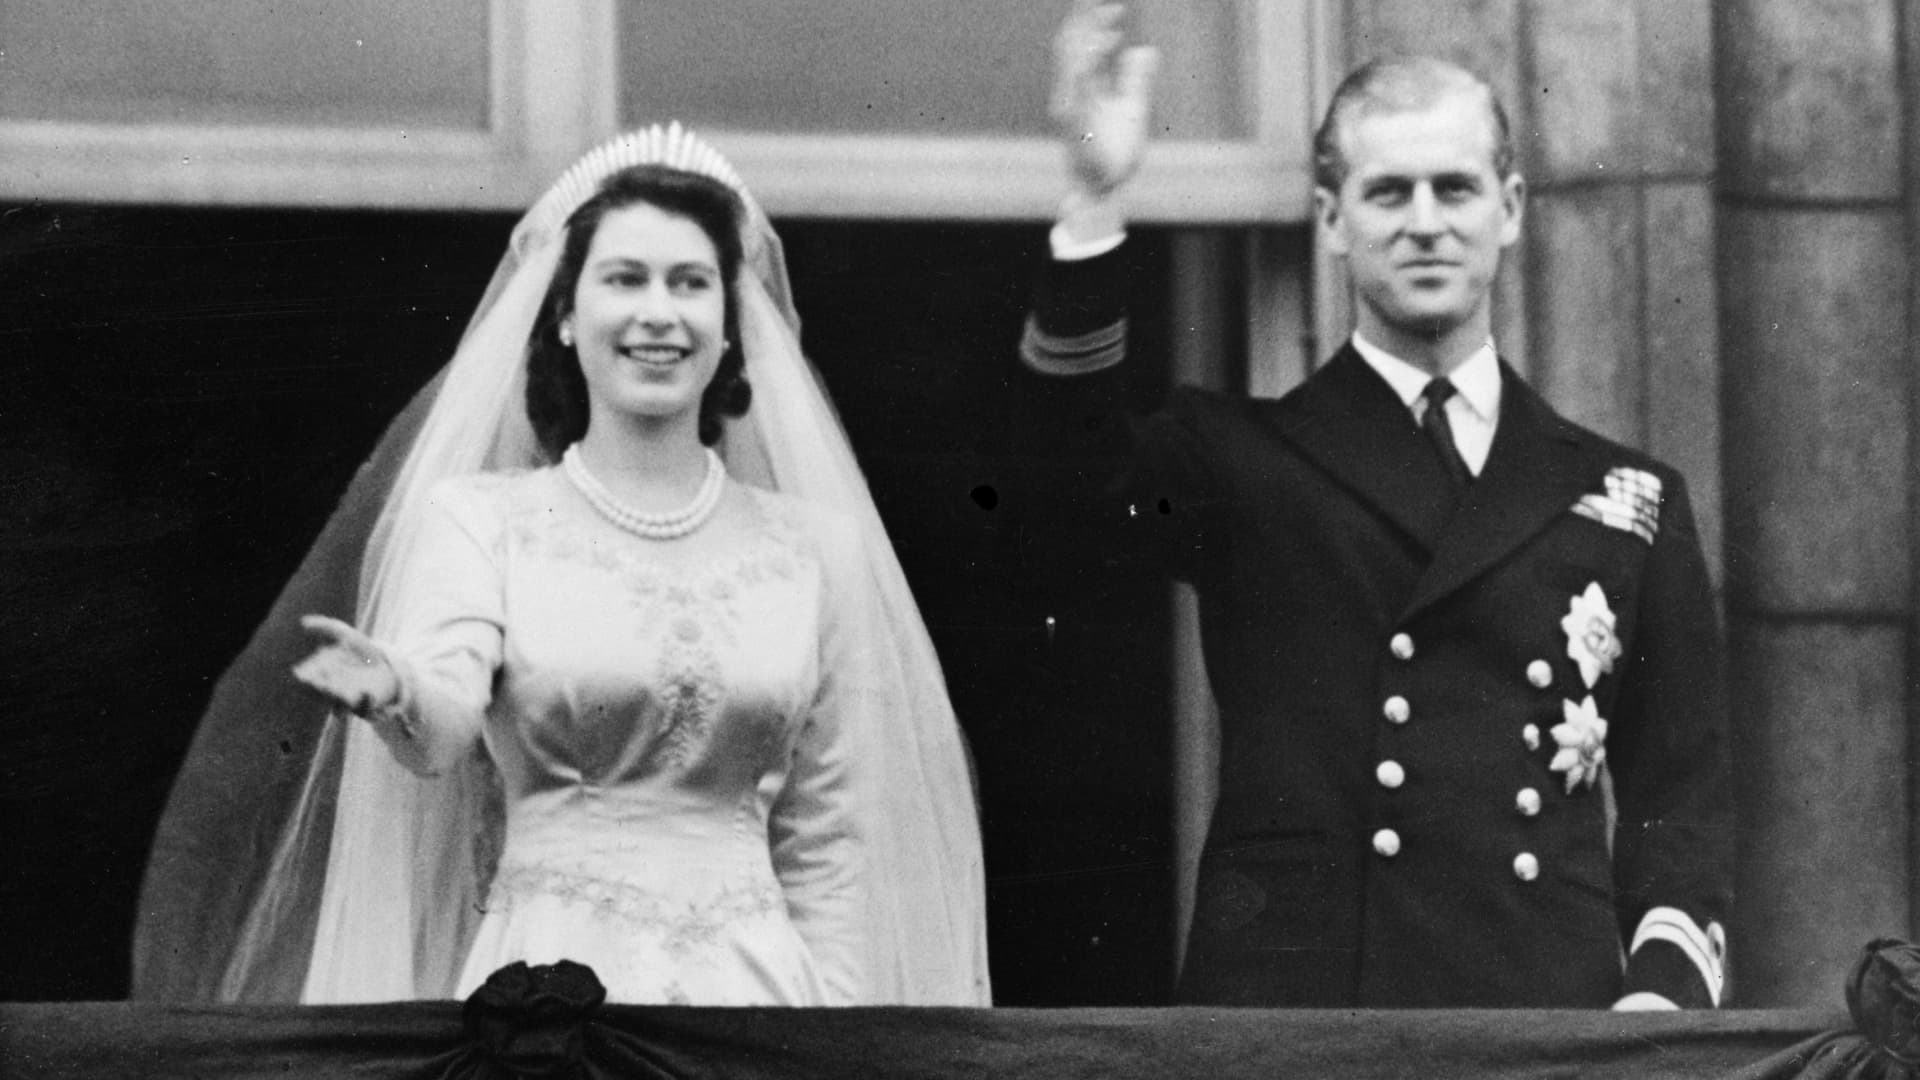 Princess Elizabeth and Prince Philip, Duke of Edinburgh, waving to a crowd from the balcony of Buckingham Palace, London shortly after their wedding at Westminster Abbey.